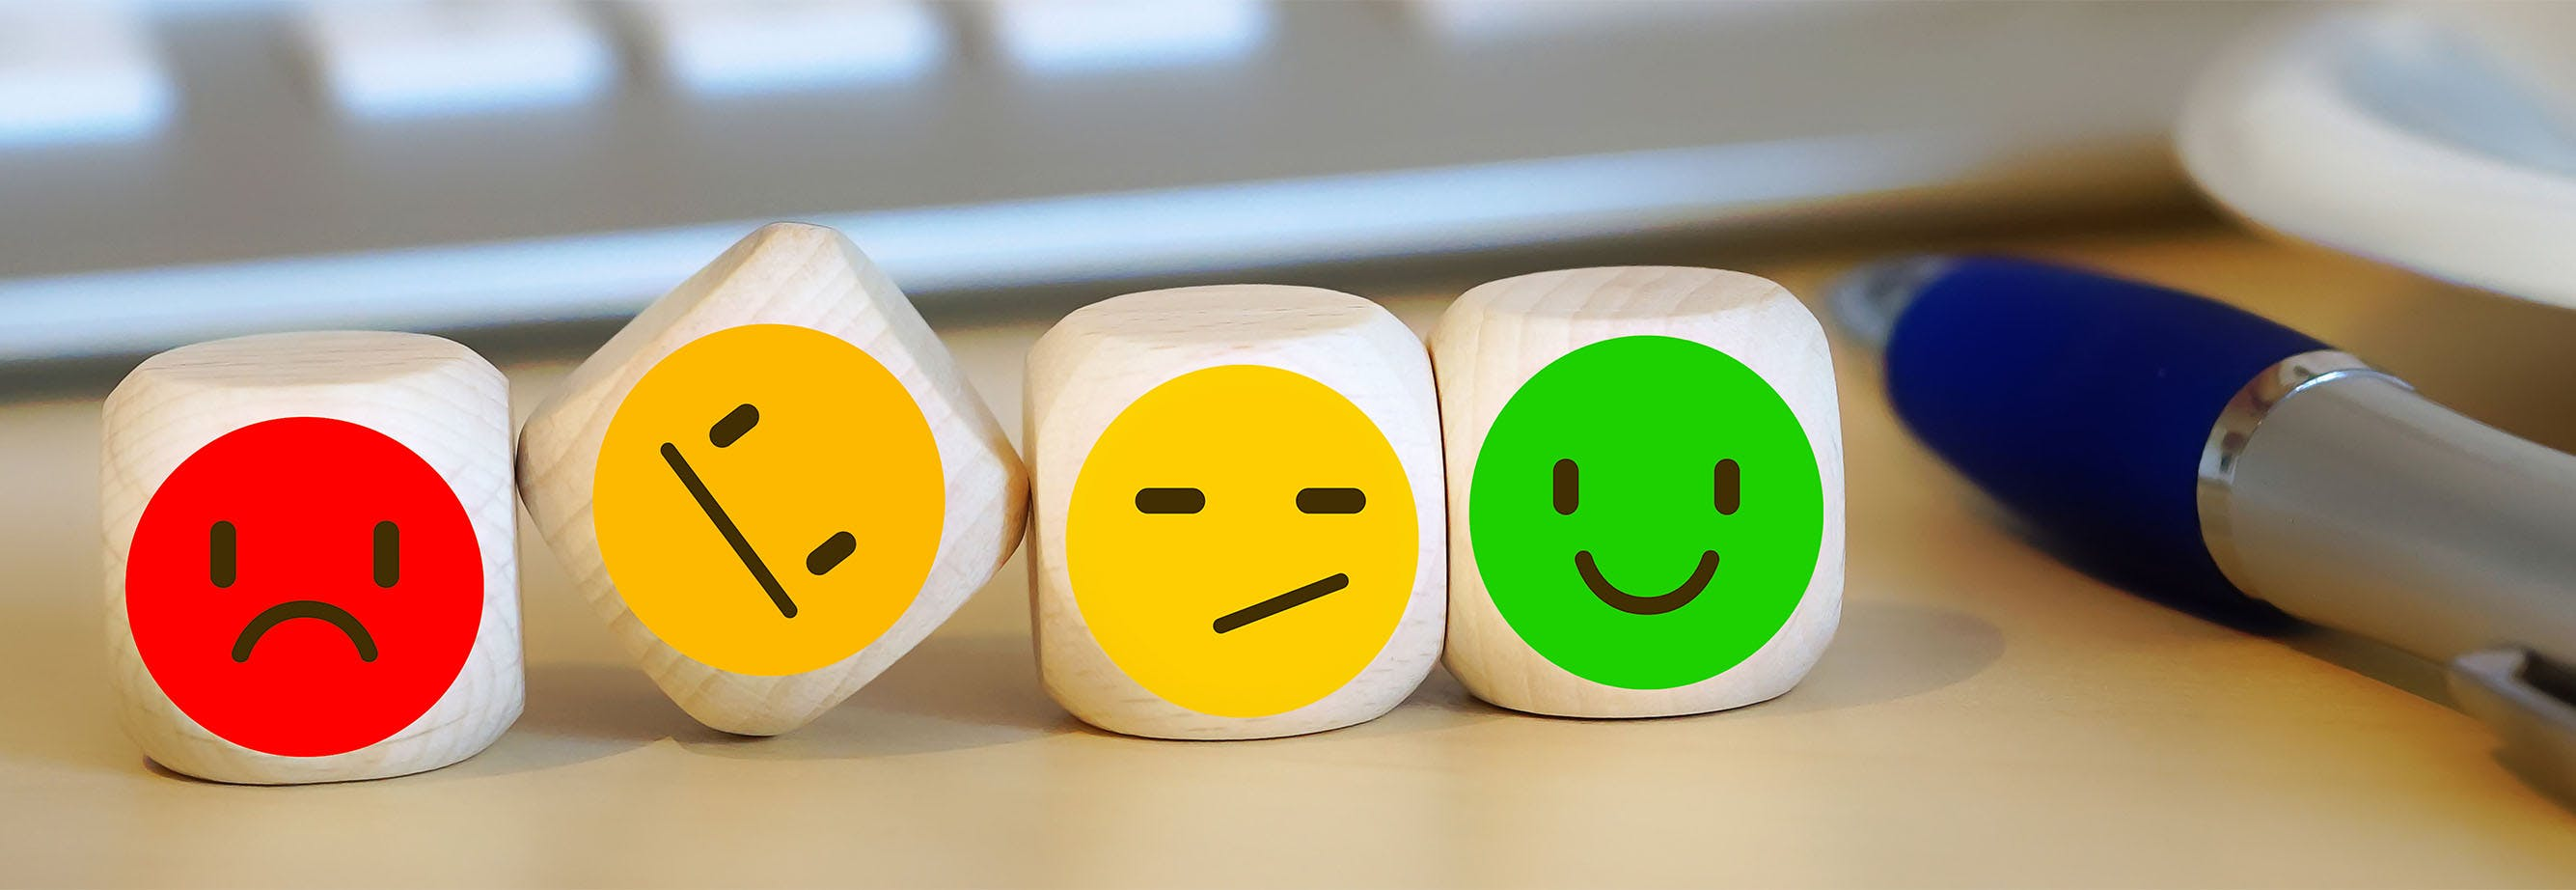 Dice with happy and sad faces on